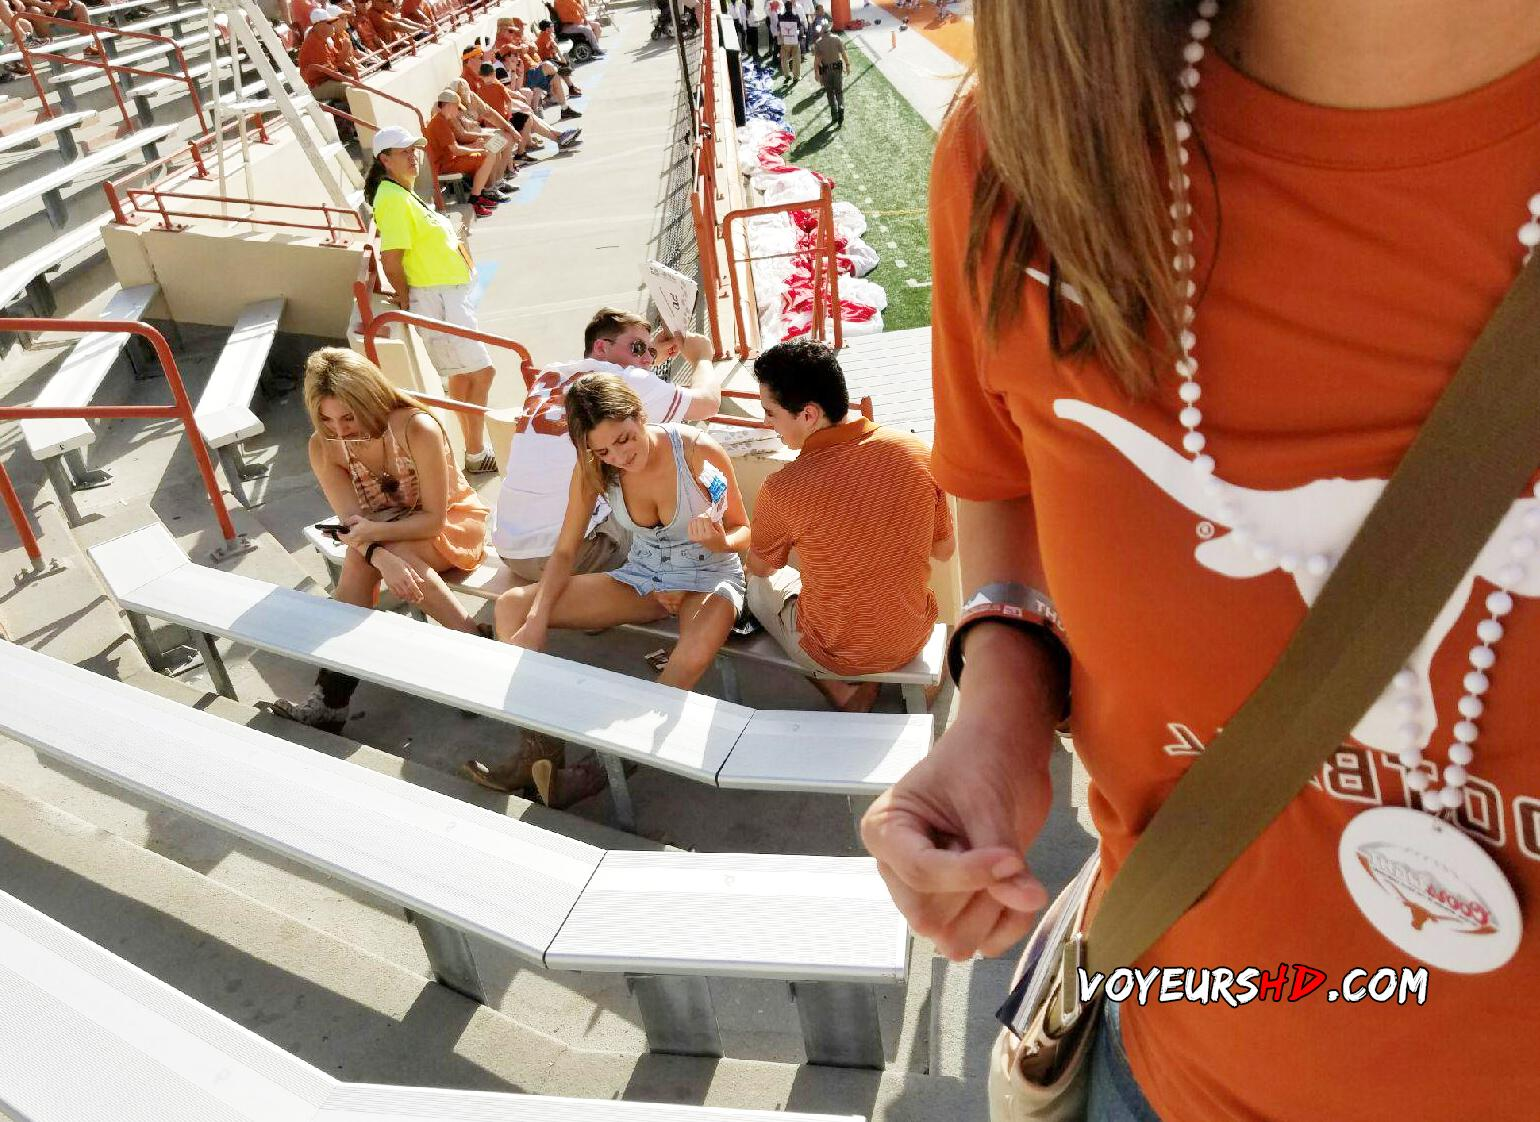 Voyeur notices hot girl with spread legs sitting on stadium bench and her upskirt is visible